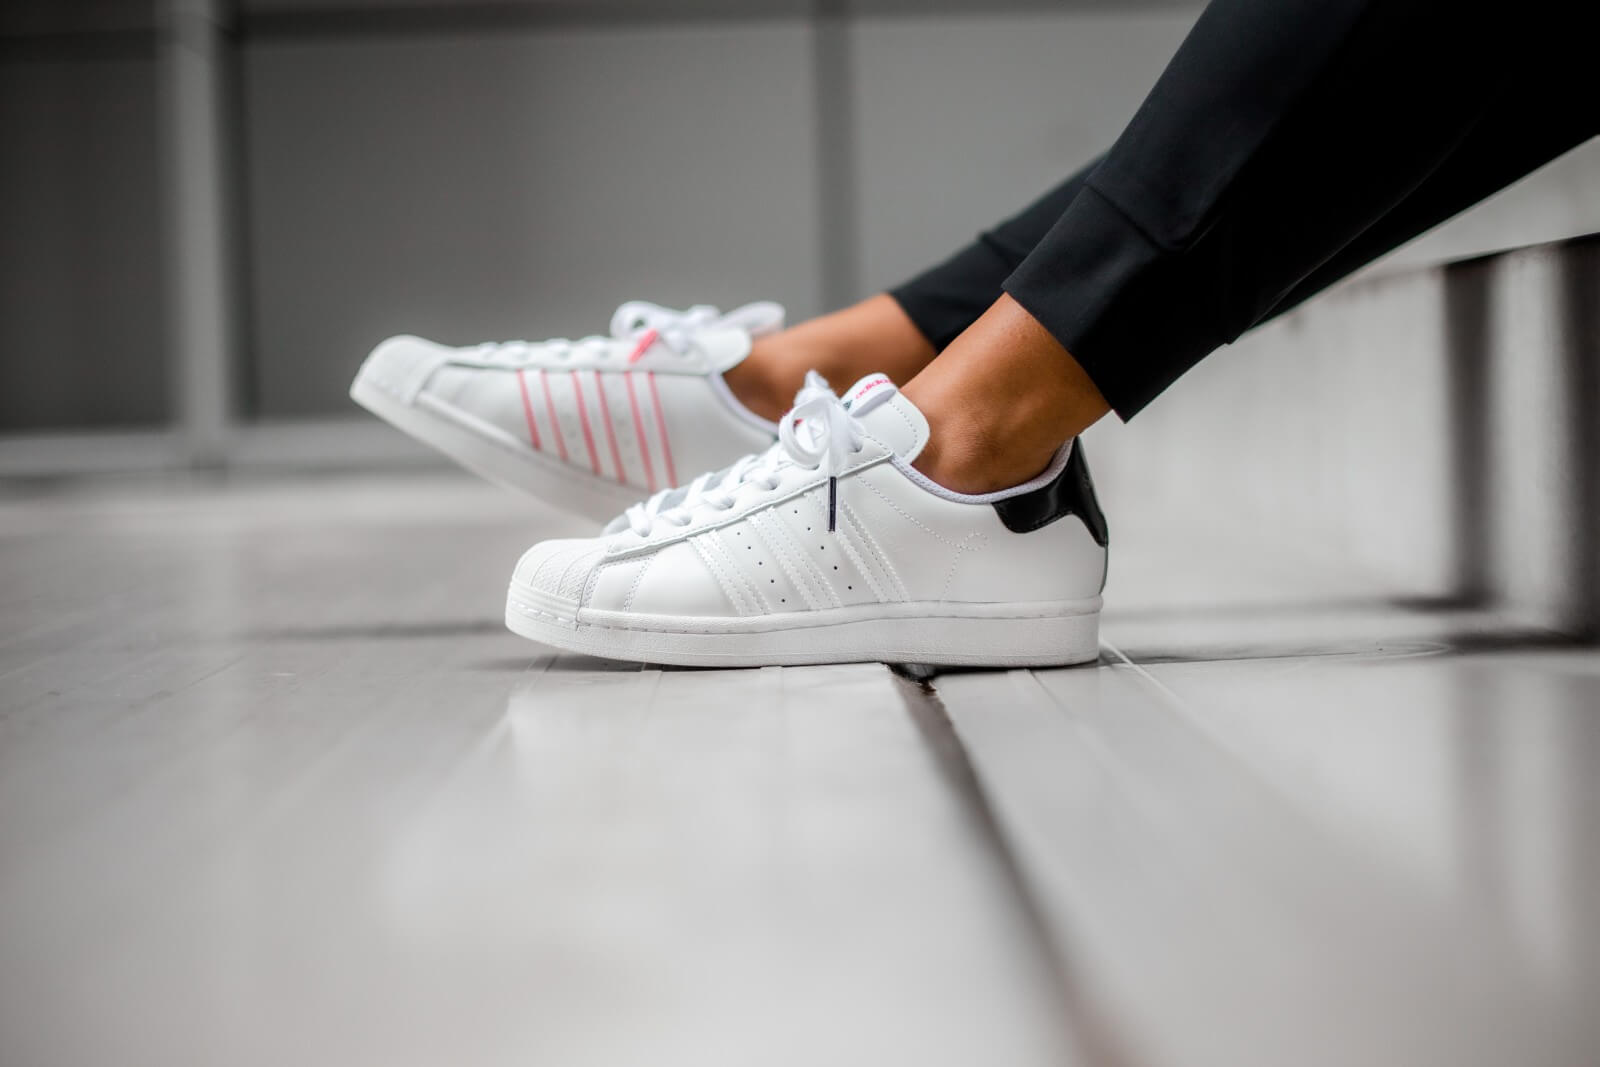 Adidas Superstar Shanghai Footwear WhiteCore Black Shock Pink FW2818